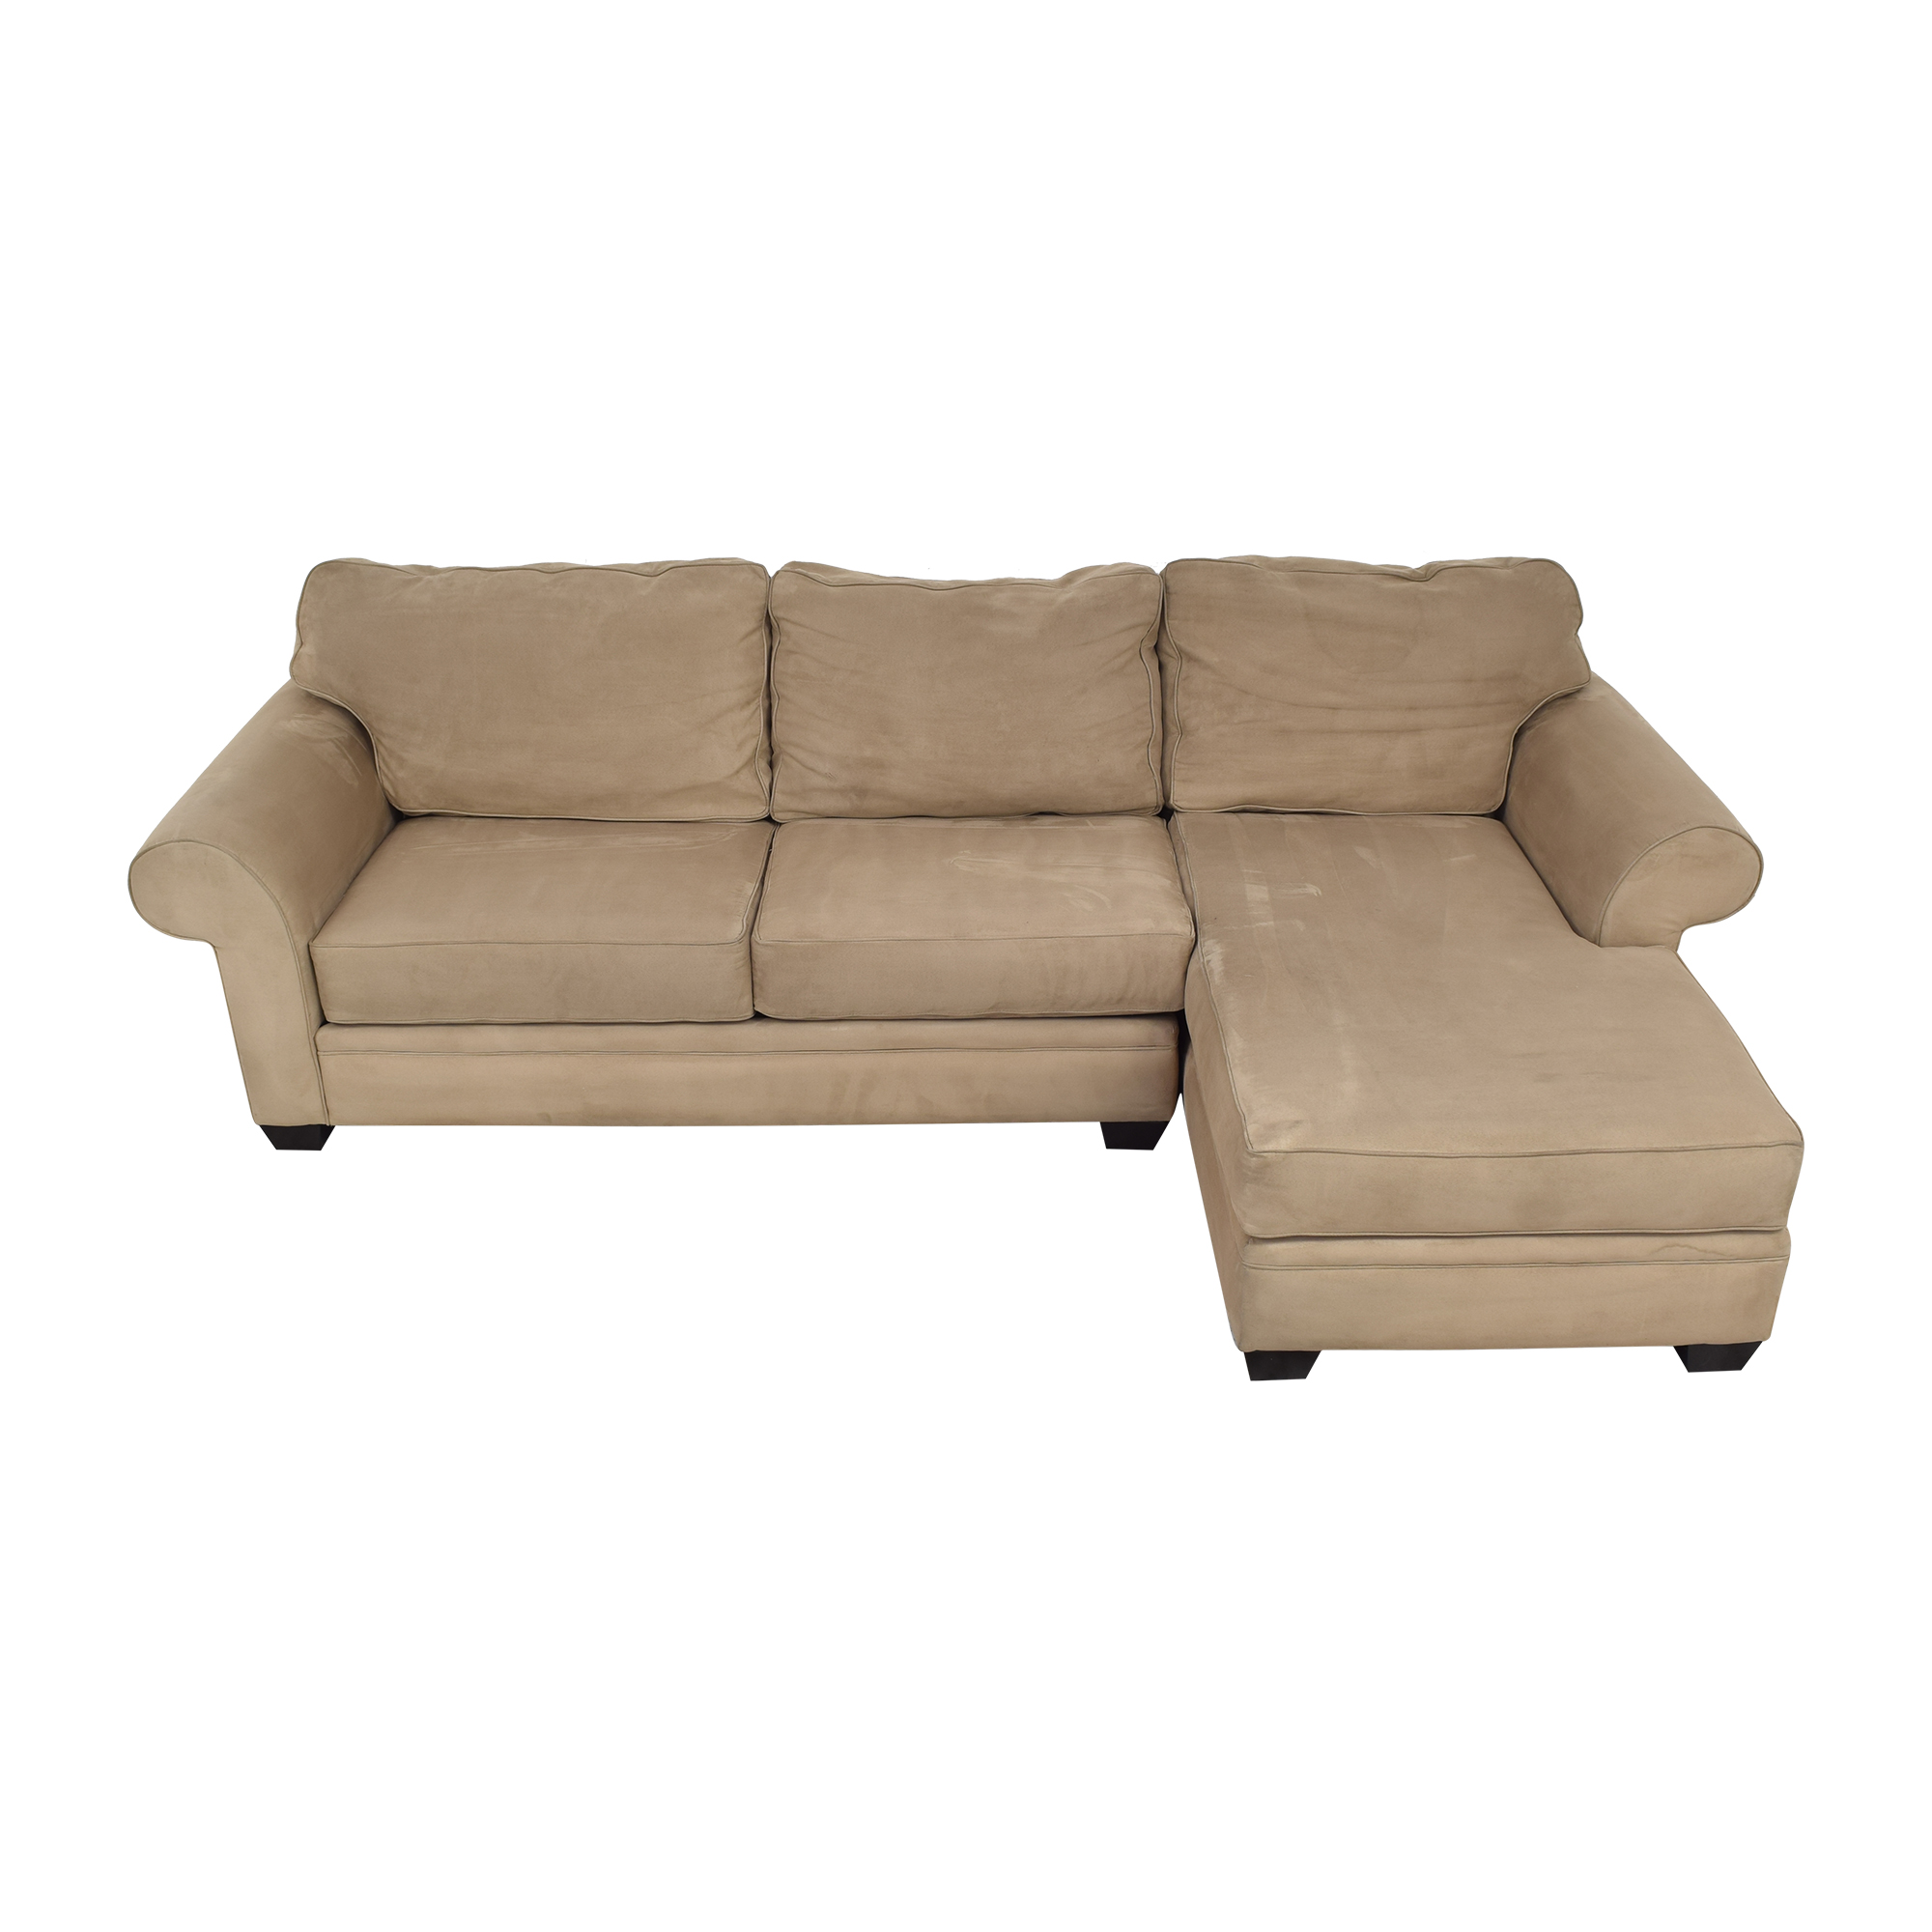 Macy's Jonathan Louis Chaise Sectional Sofa for sale